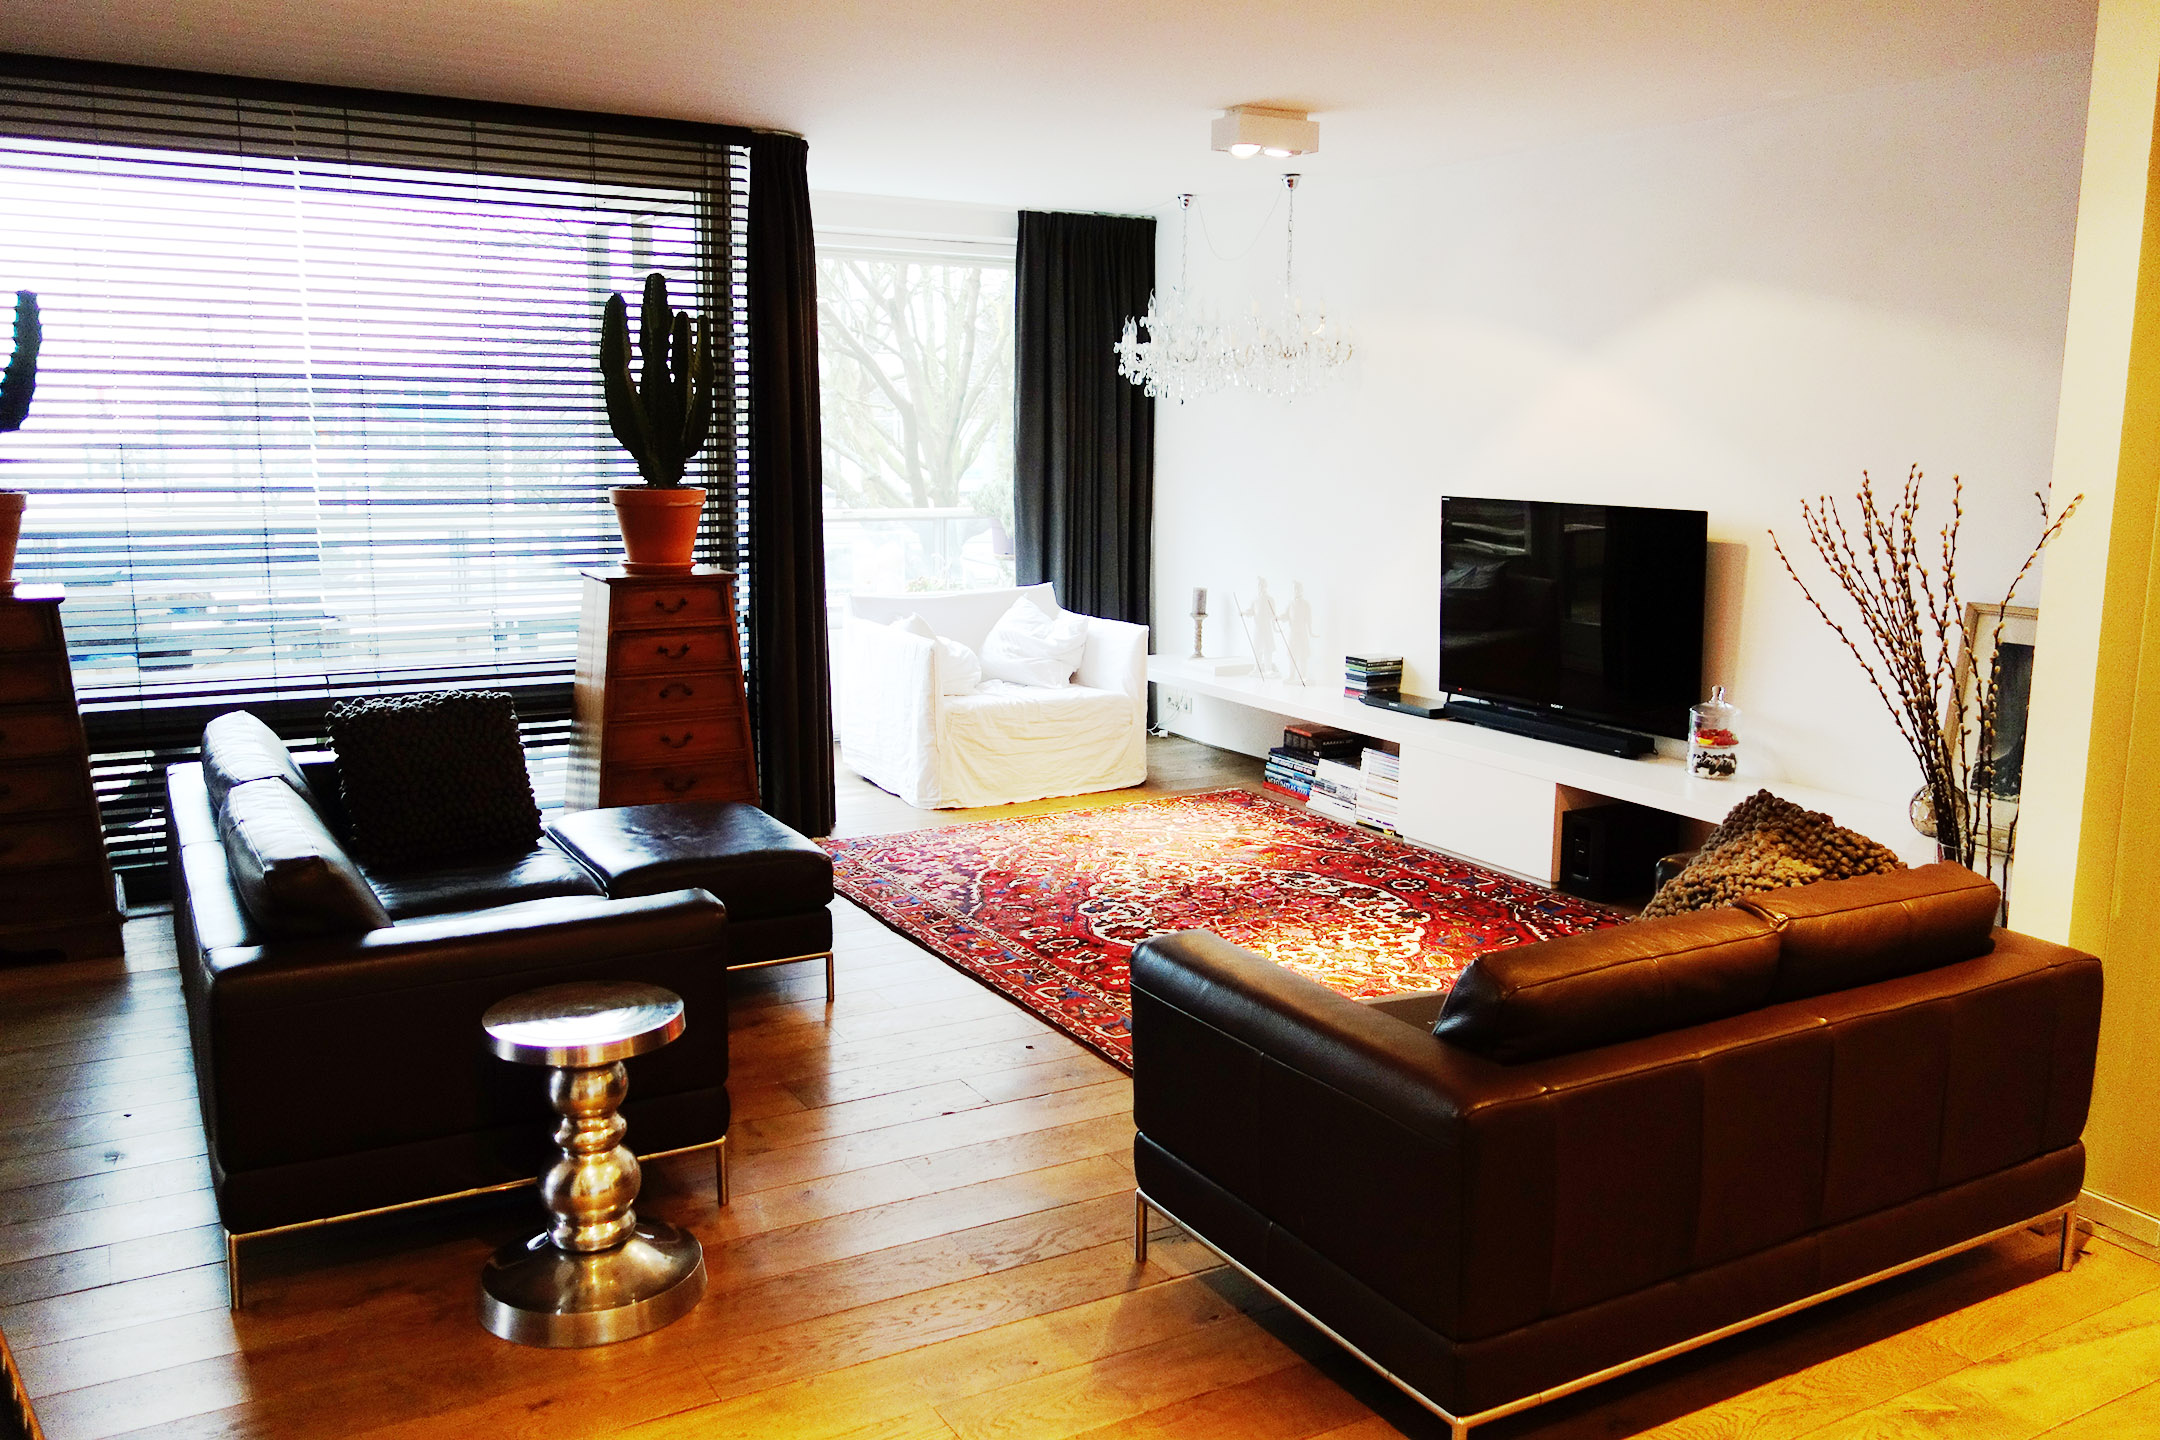 House Rotterdam for rent few years expats